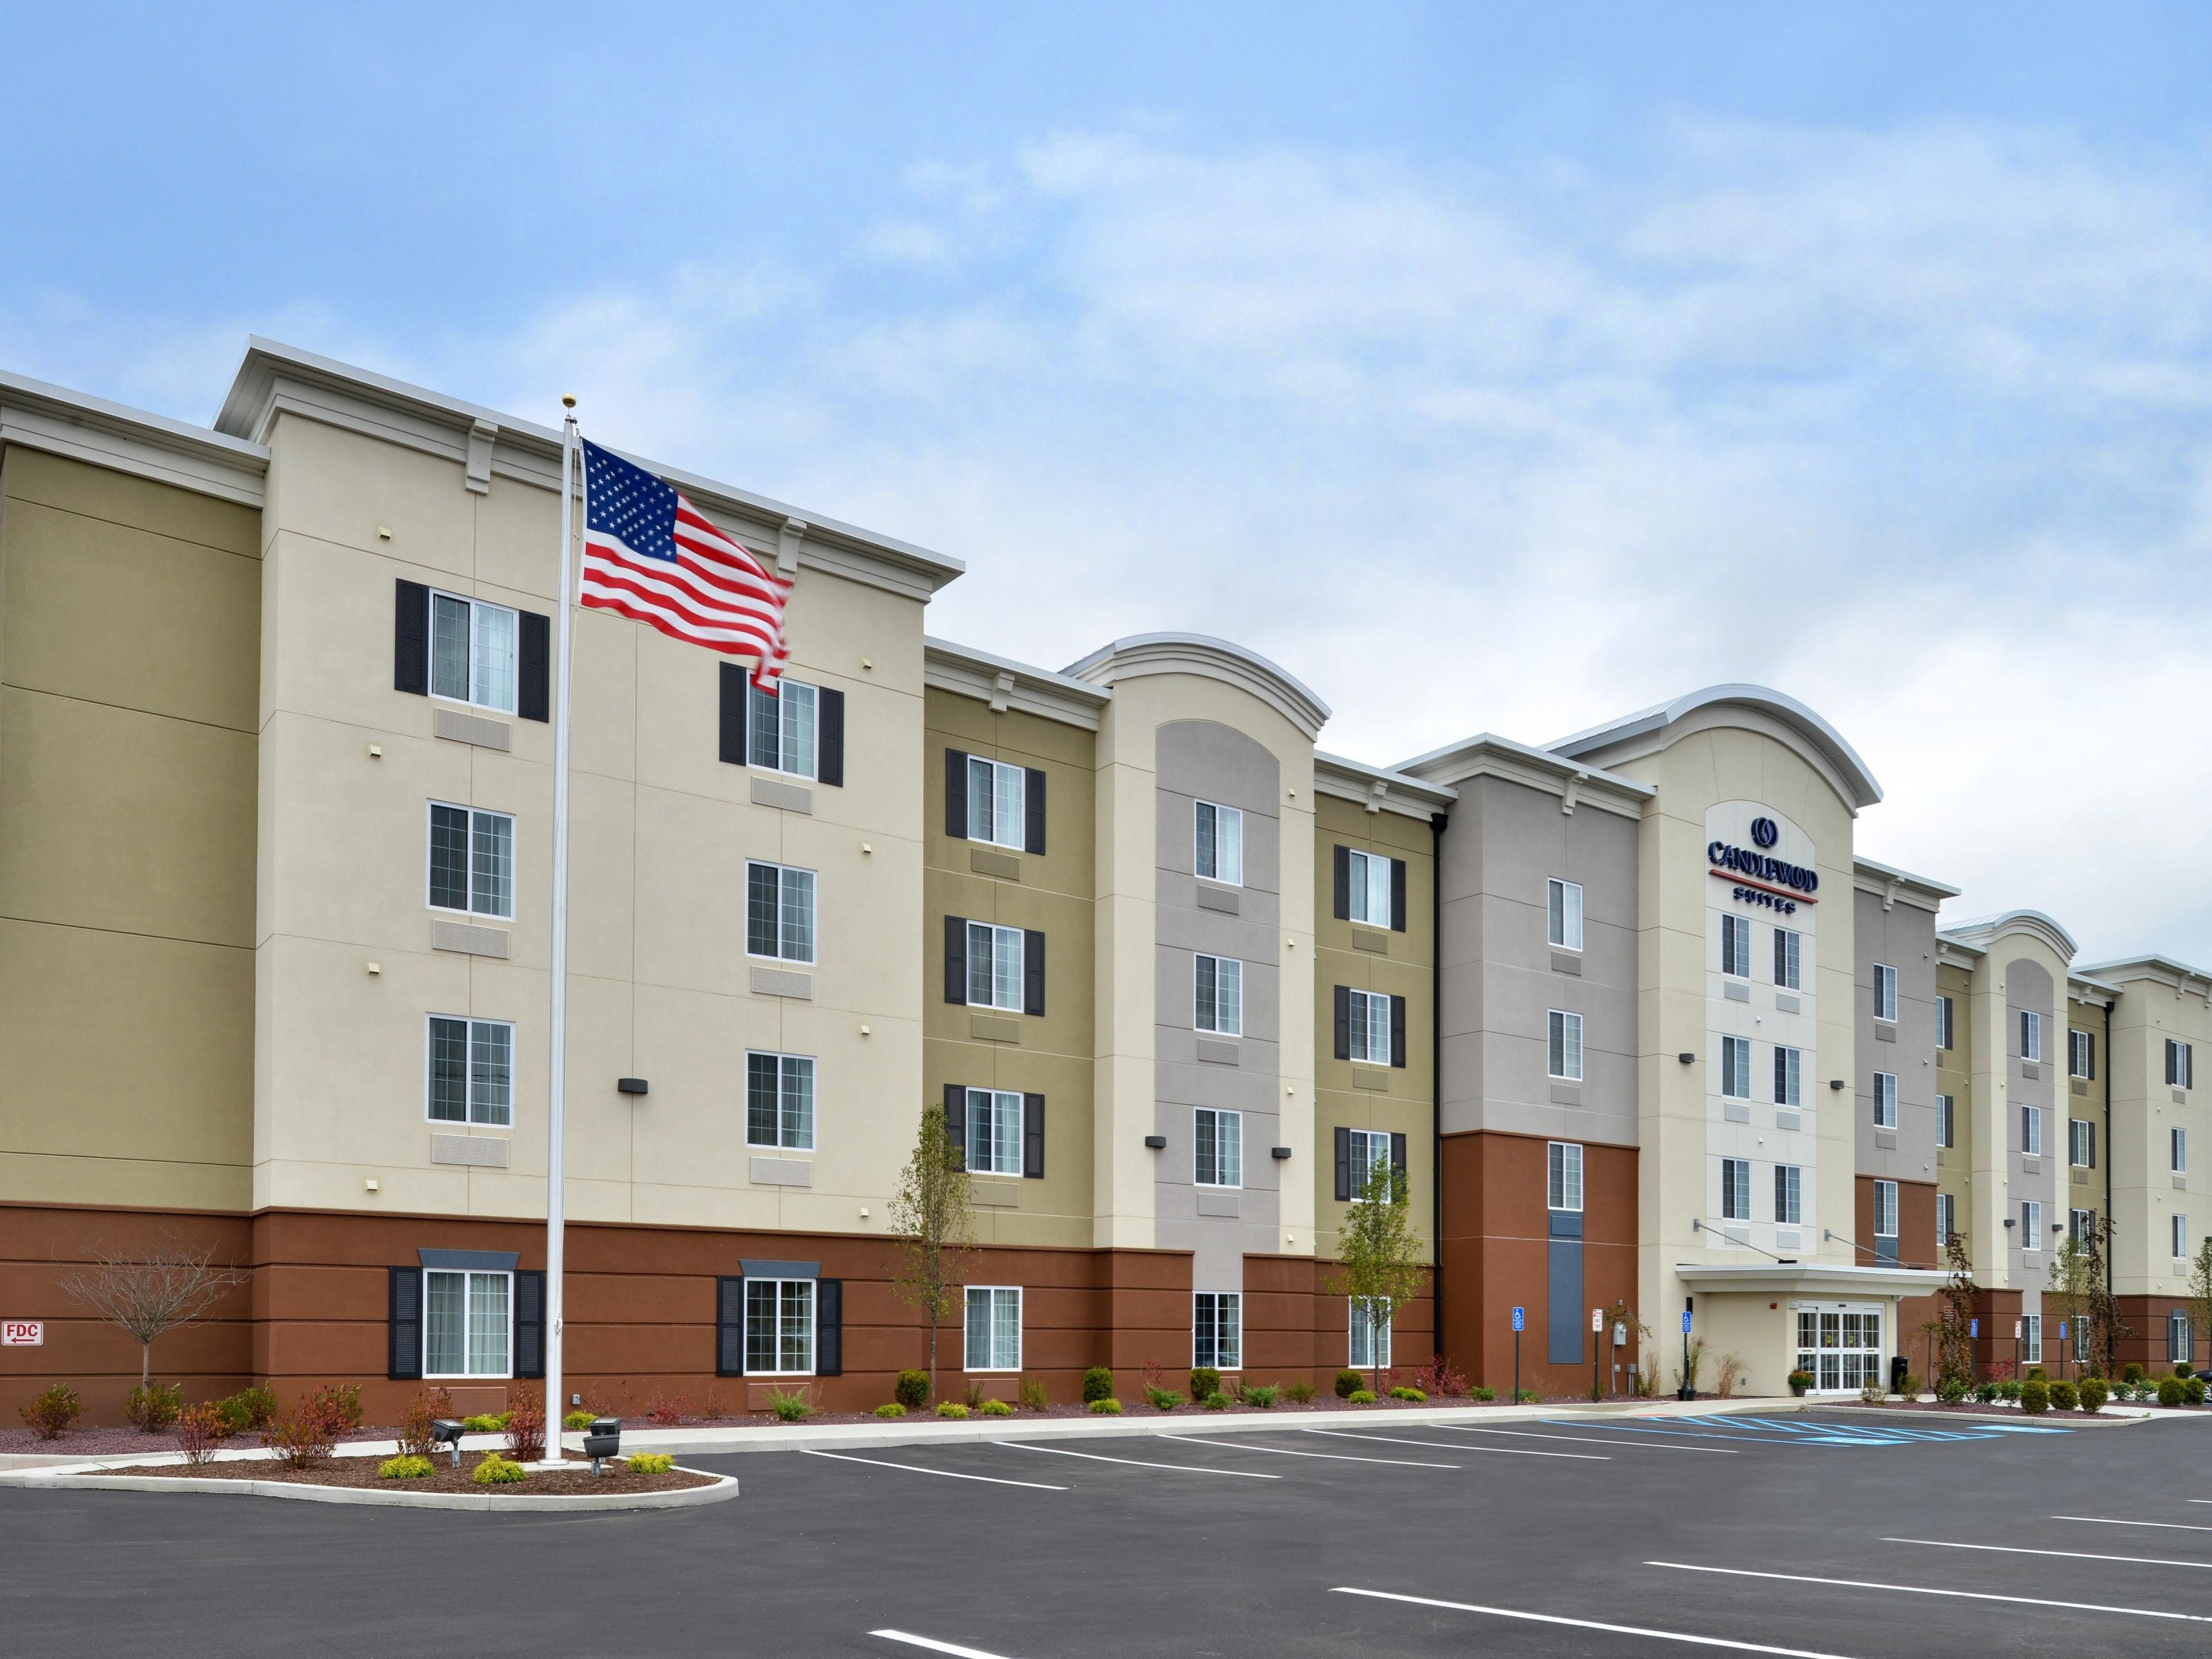 Sayre Hotels Candlewood Suites Extended Stay Hotel In Pennsylvania